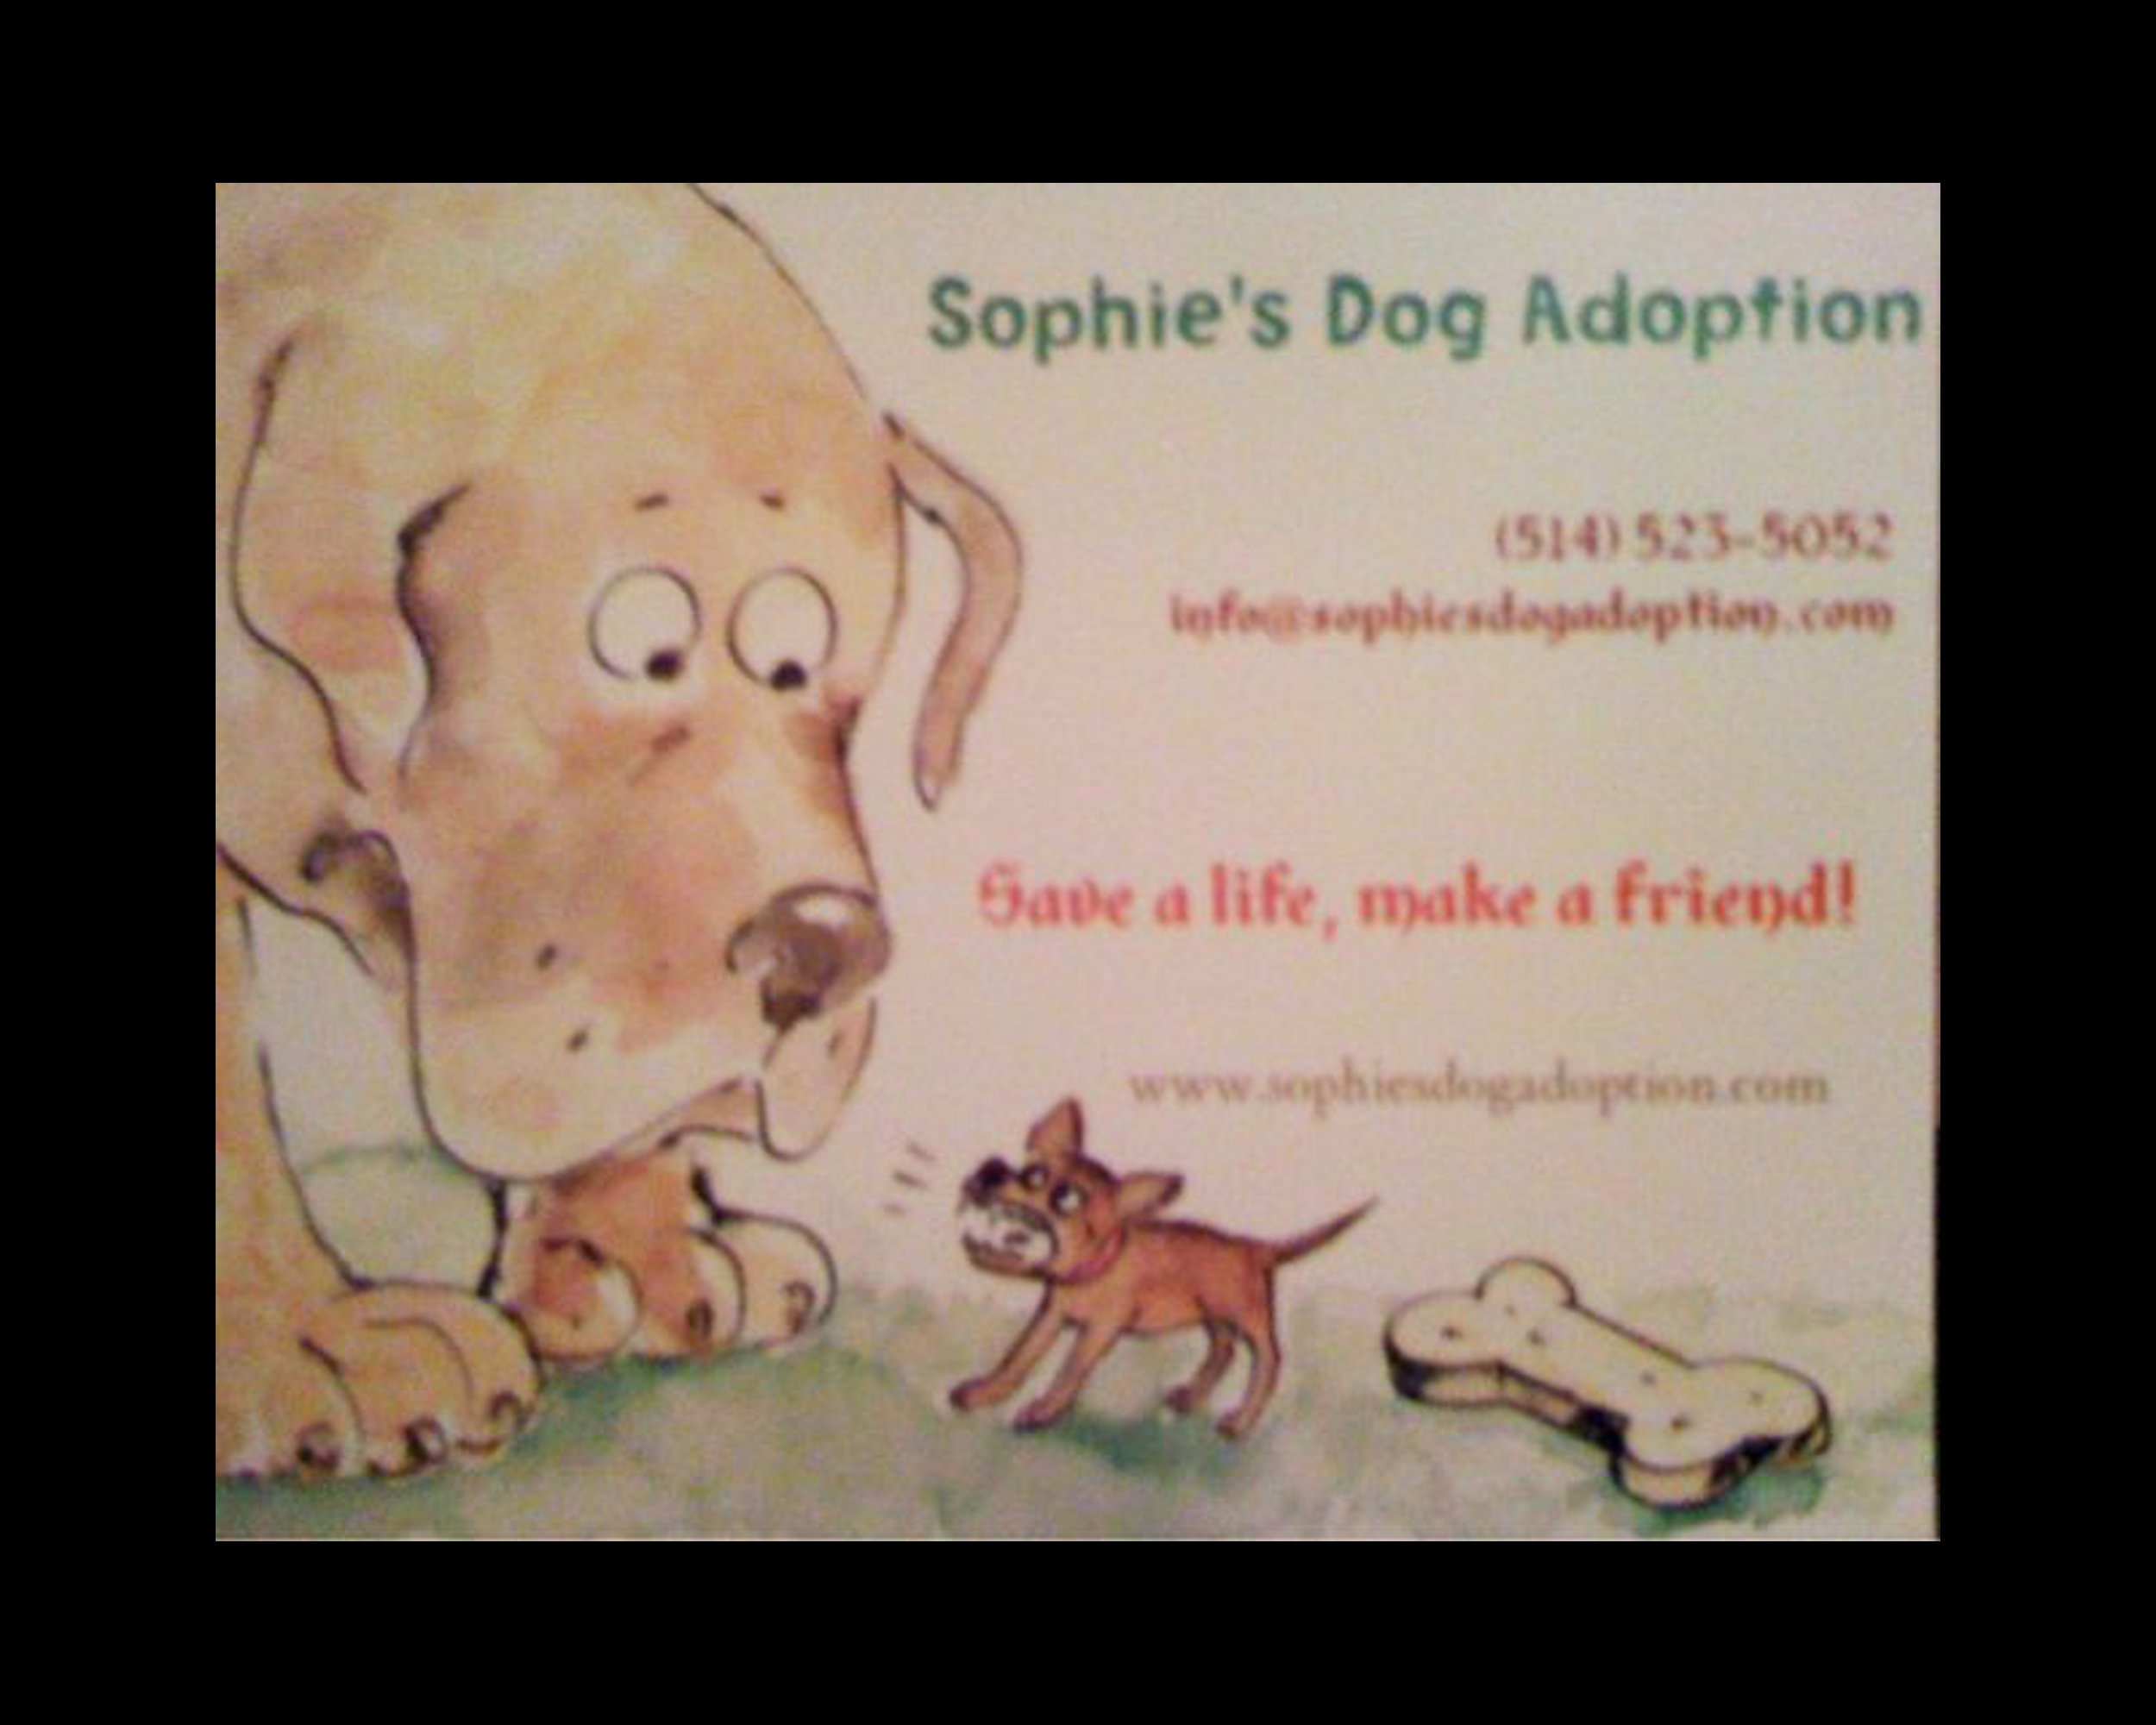 Sophie's Dog Adoption – Reunion 2010!